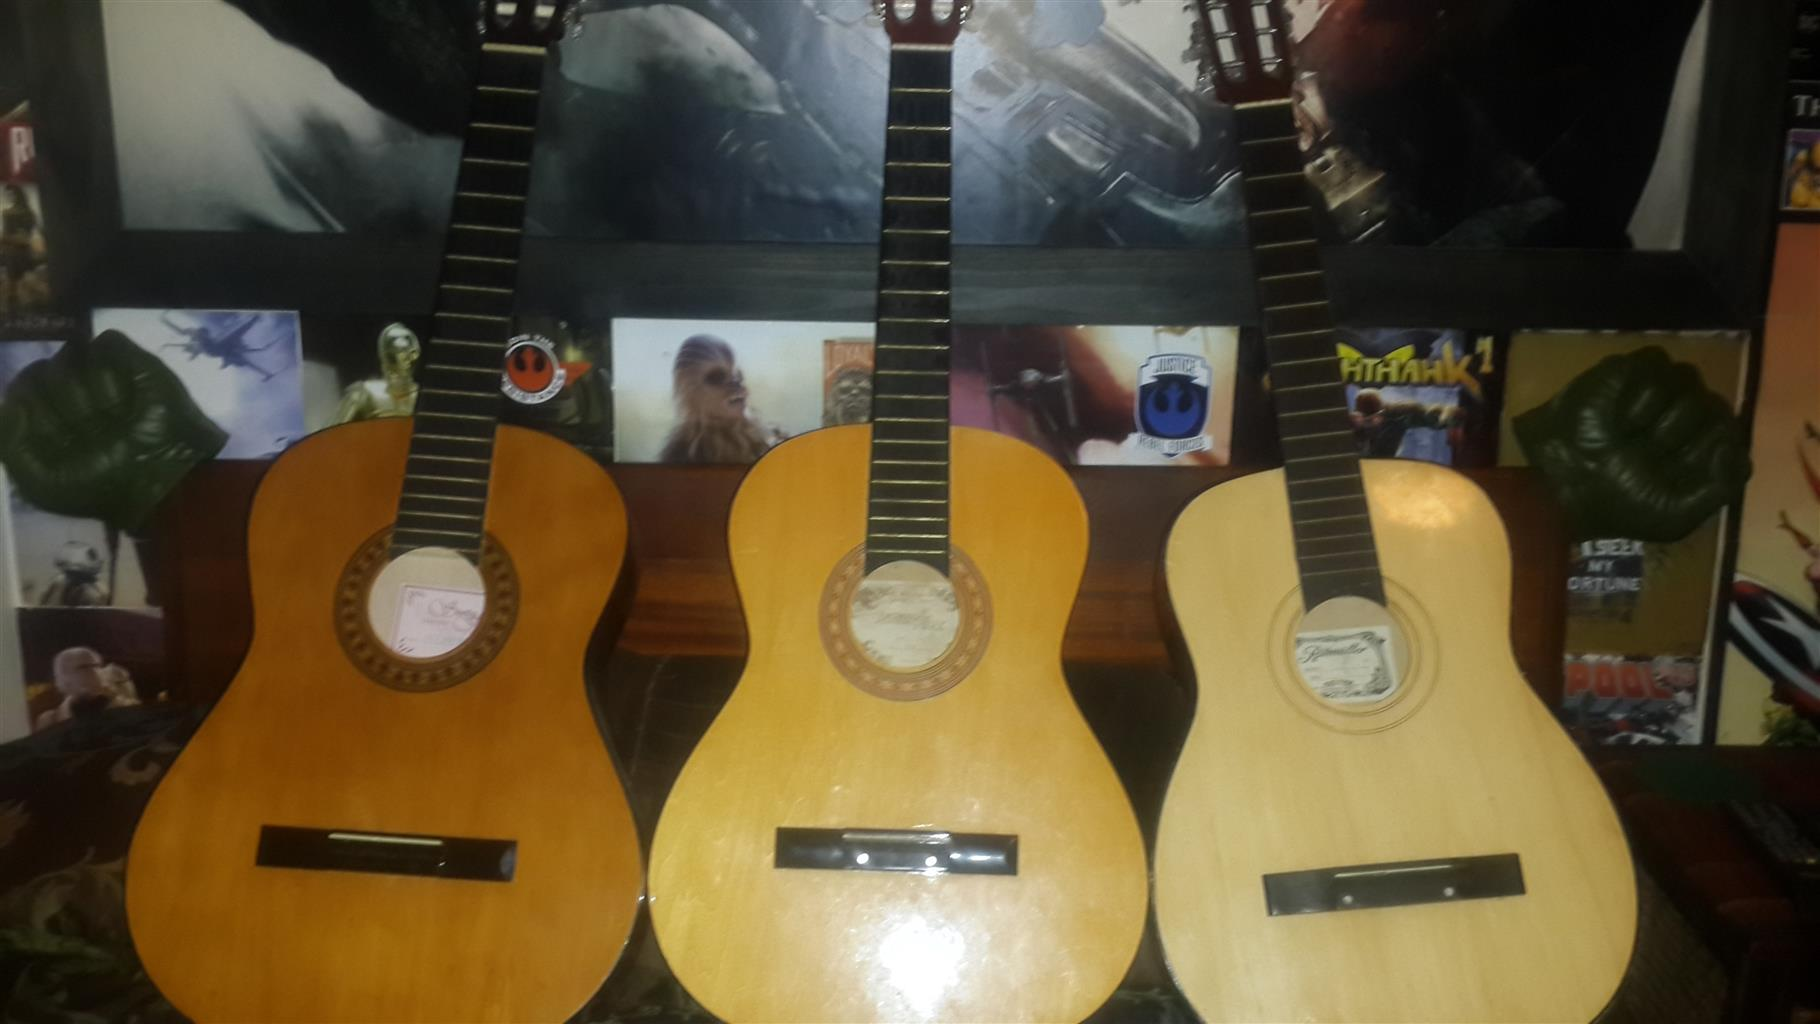 3 second hand acoustic guitars r1000 for all 3 junk mail. Black Bedroom Furniture Sets. Home Design Ideas